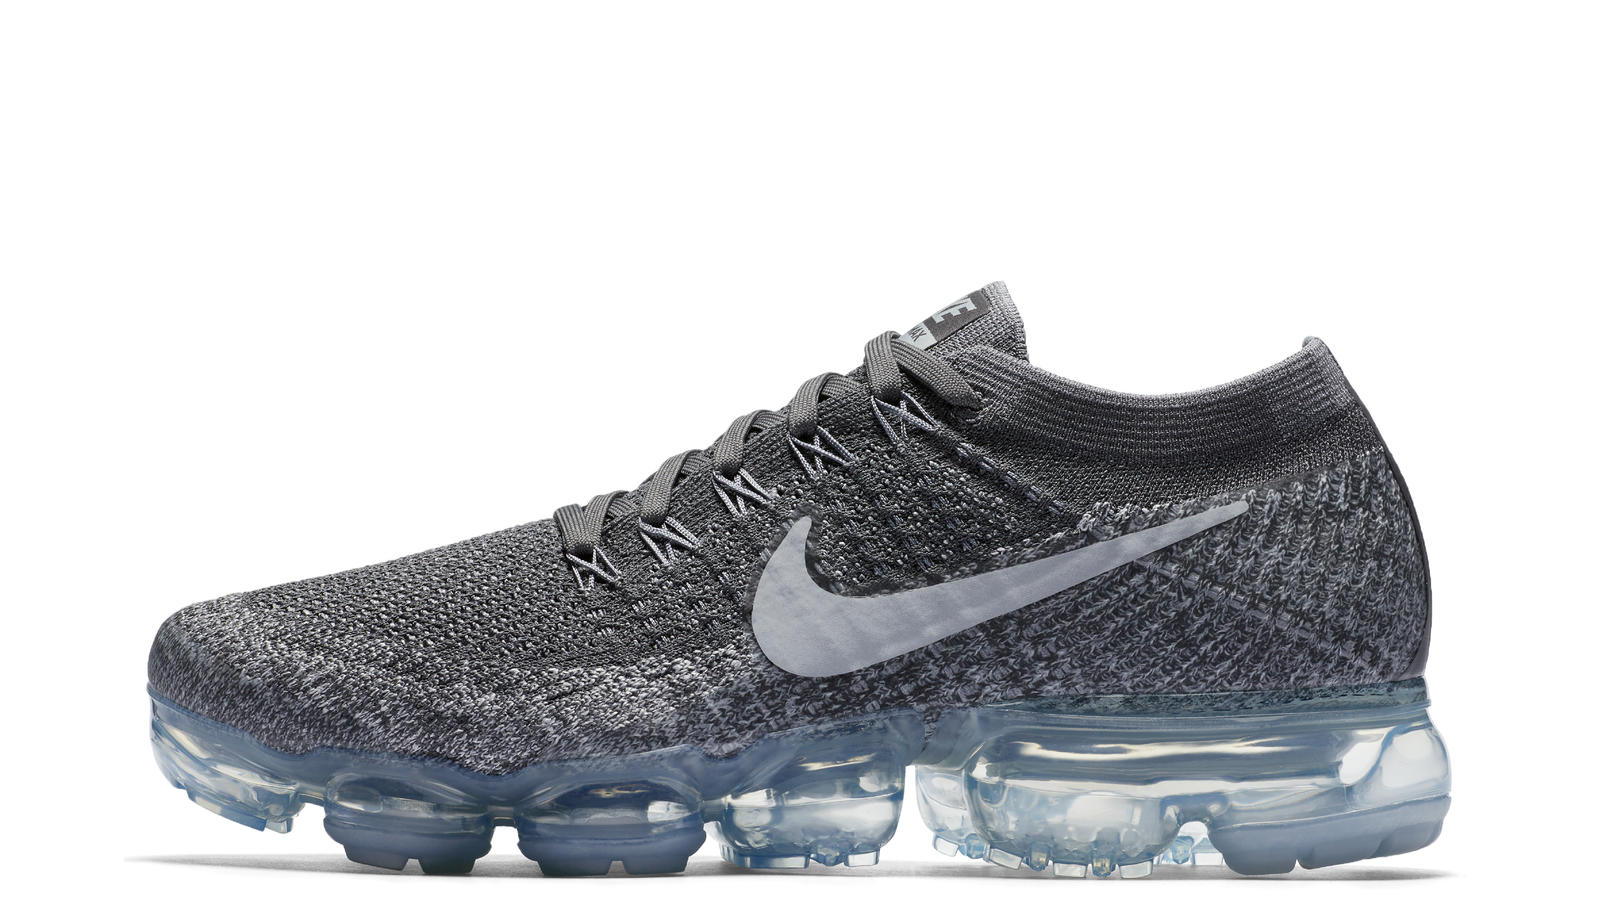 d90a0554f94d4 Shades of VaporMax - Nike News